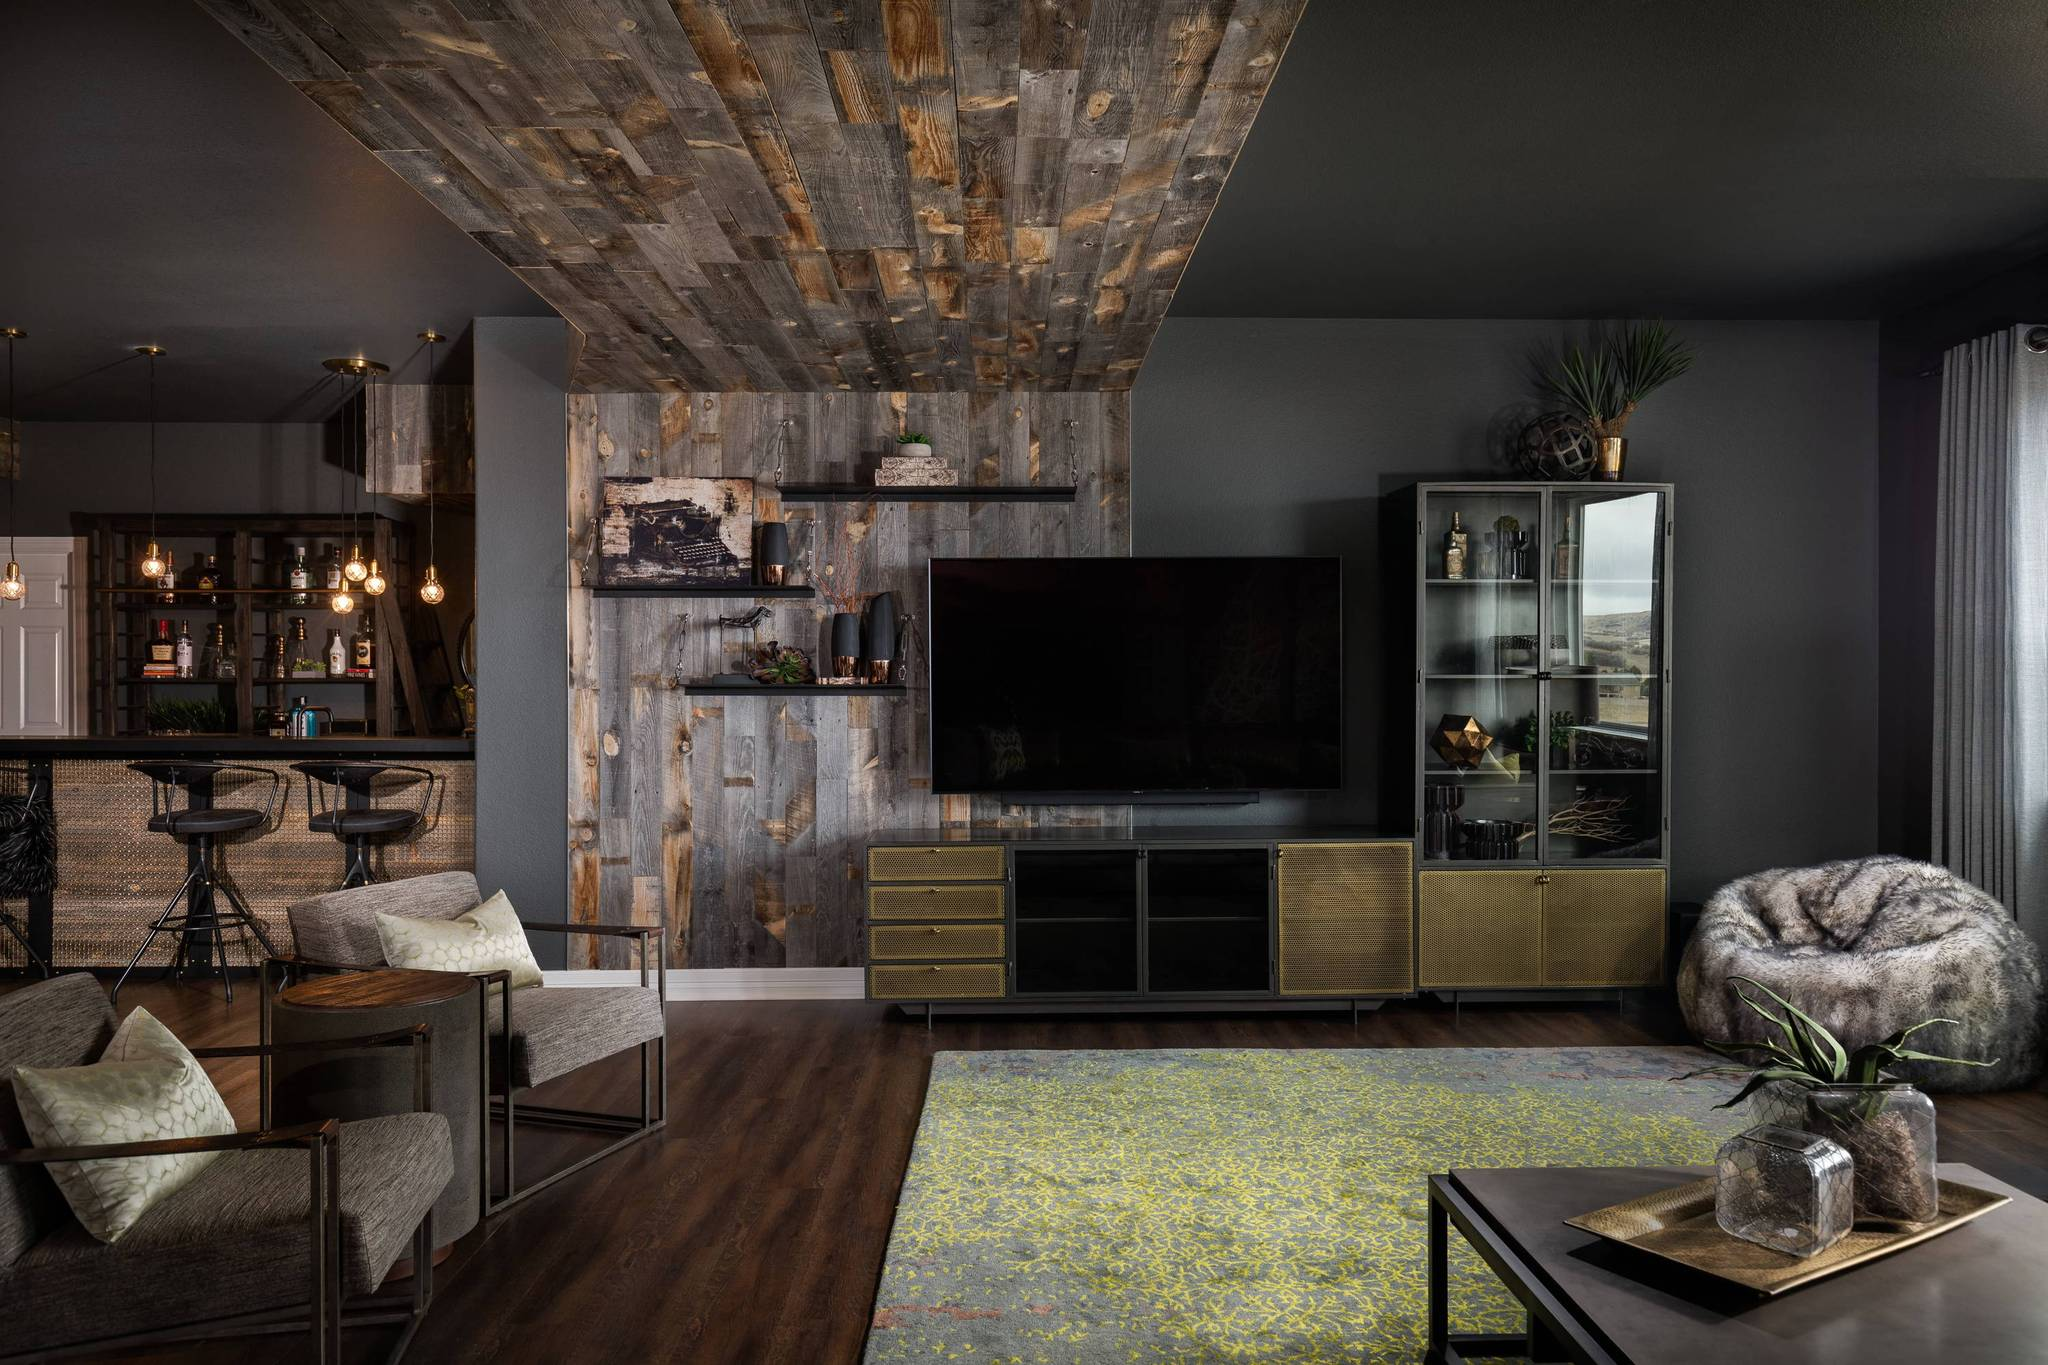 damore interiors modern rustic living room design featuring reclaimed Stikwood peel and stick wood planks.